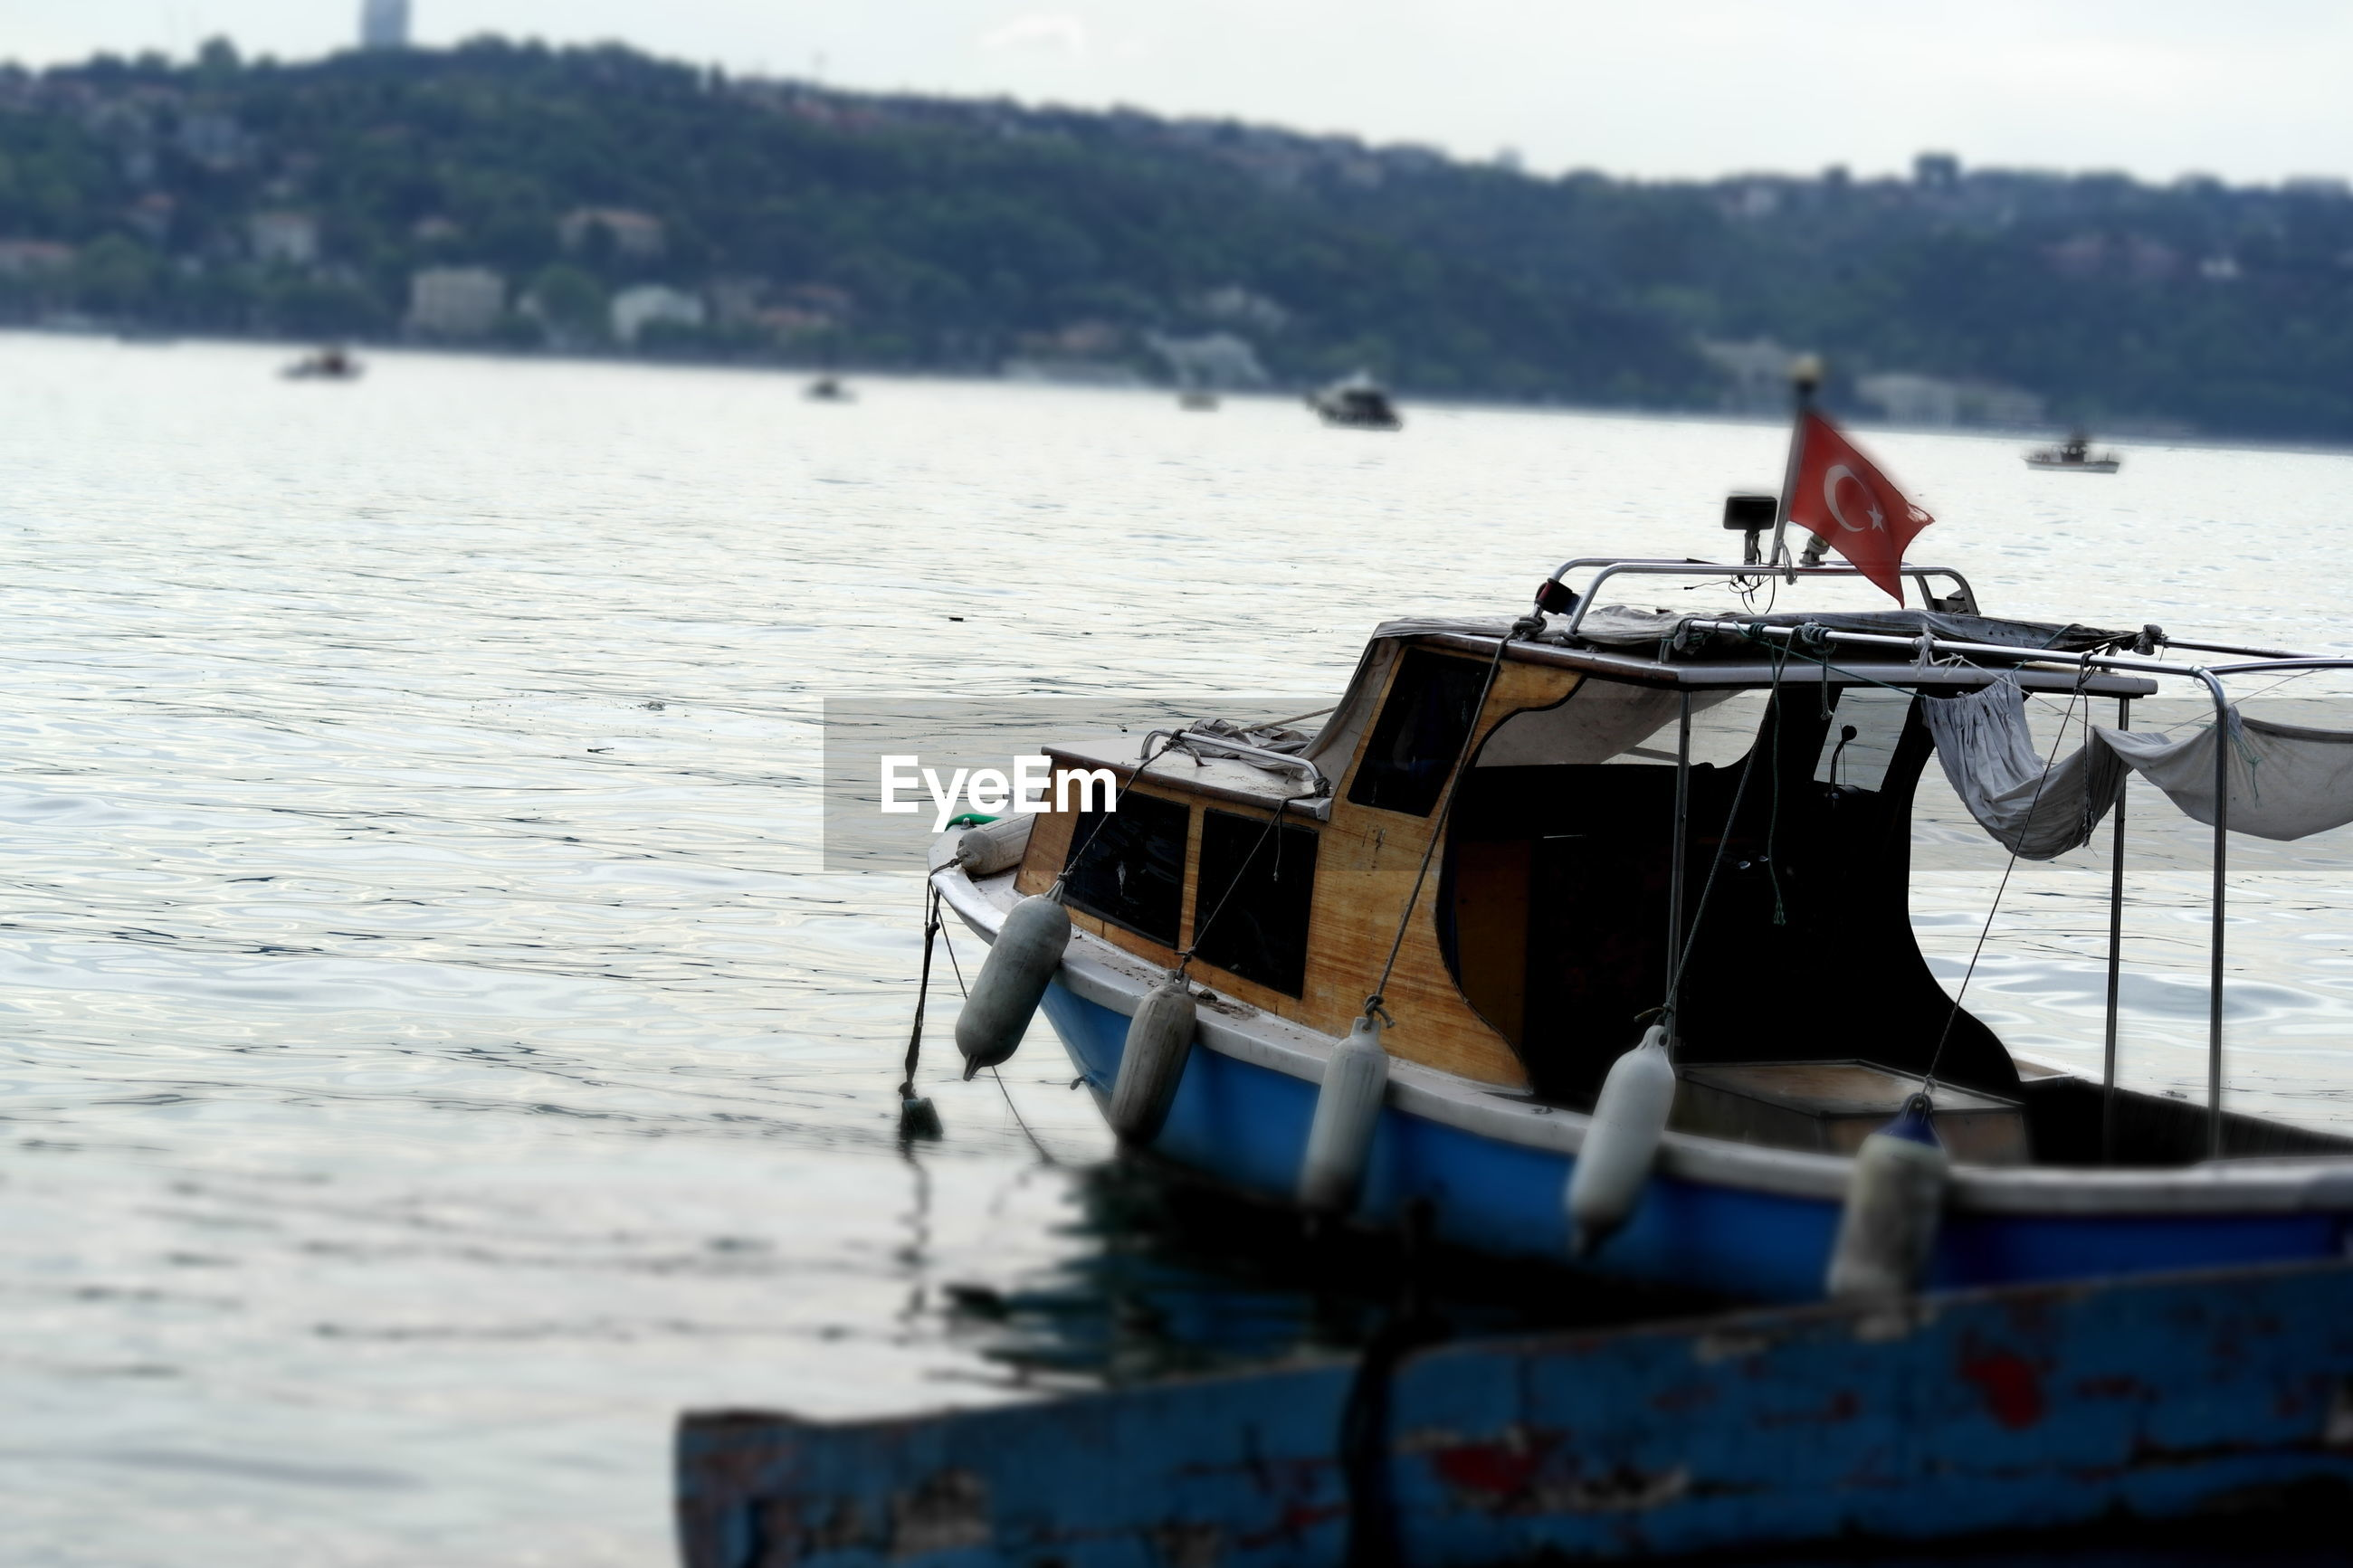 water, nautical vessel, transportation, mode of transport, boat, men, focus on foreground, river, sea, lake, sitting, lifestyles, moored, leisure activity, side view, nature, day, outdoors